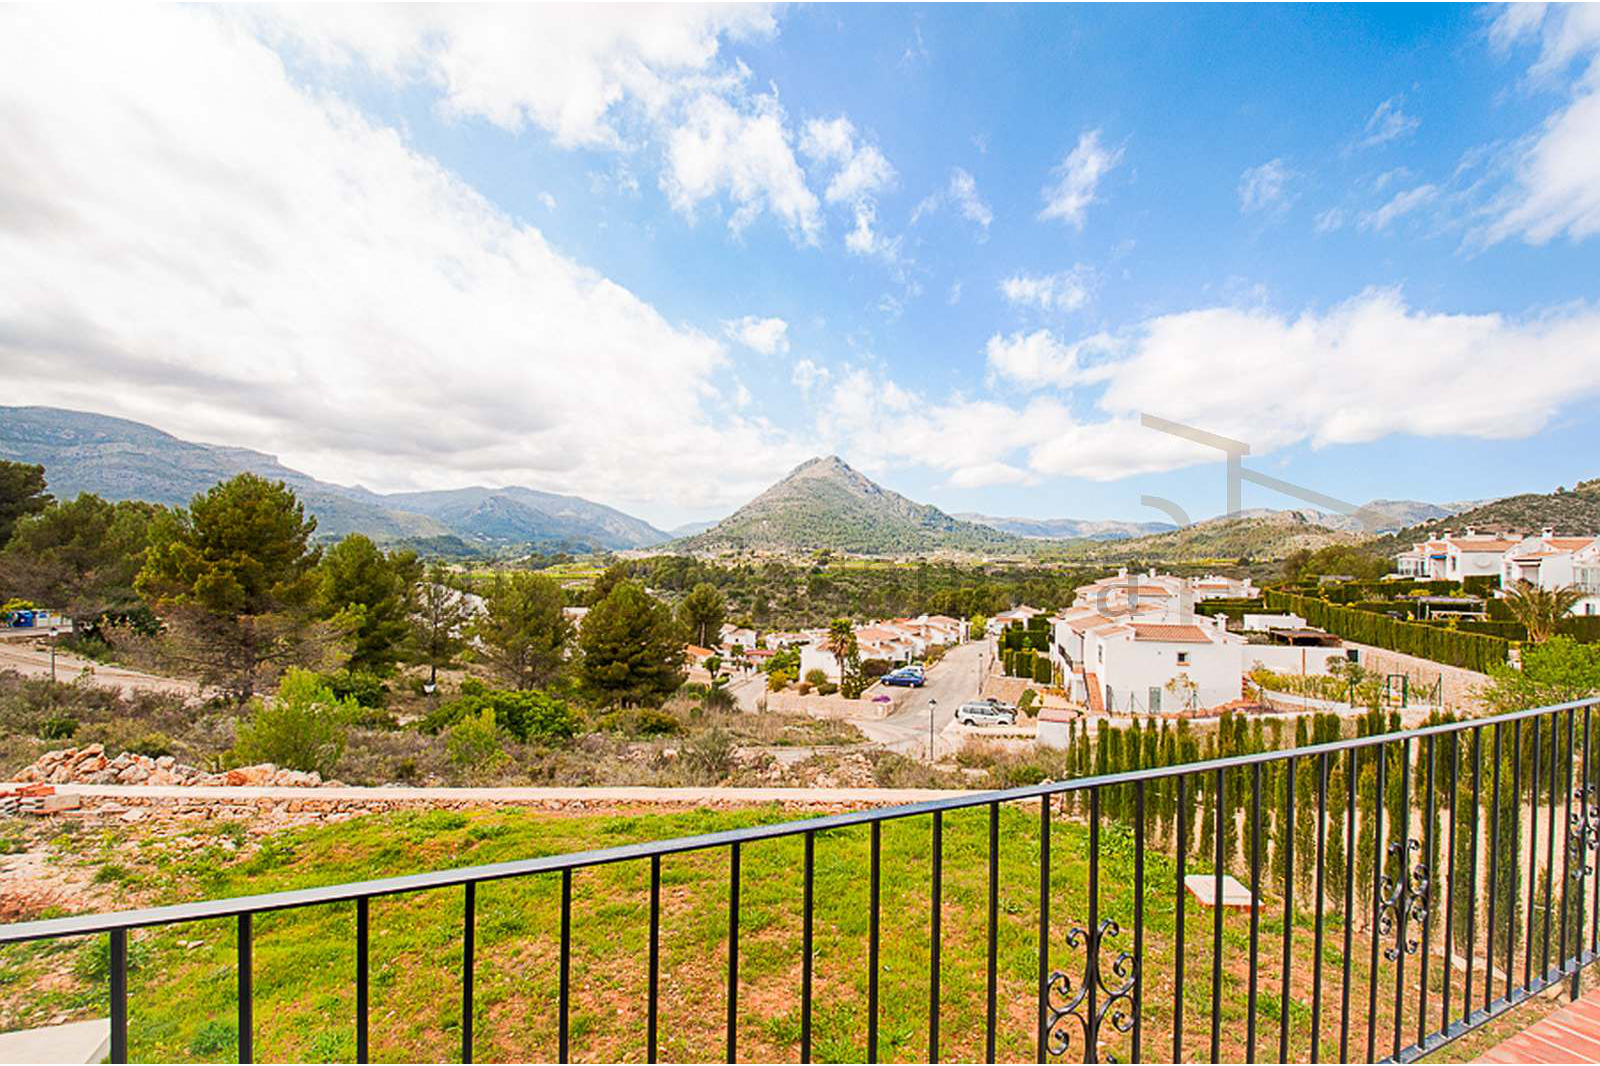 Murla- Detached villas, ready to move into on the Costa Blanca pic 7